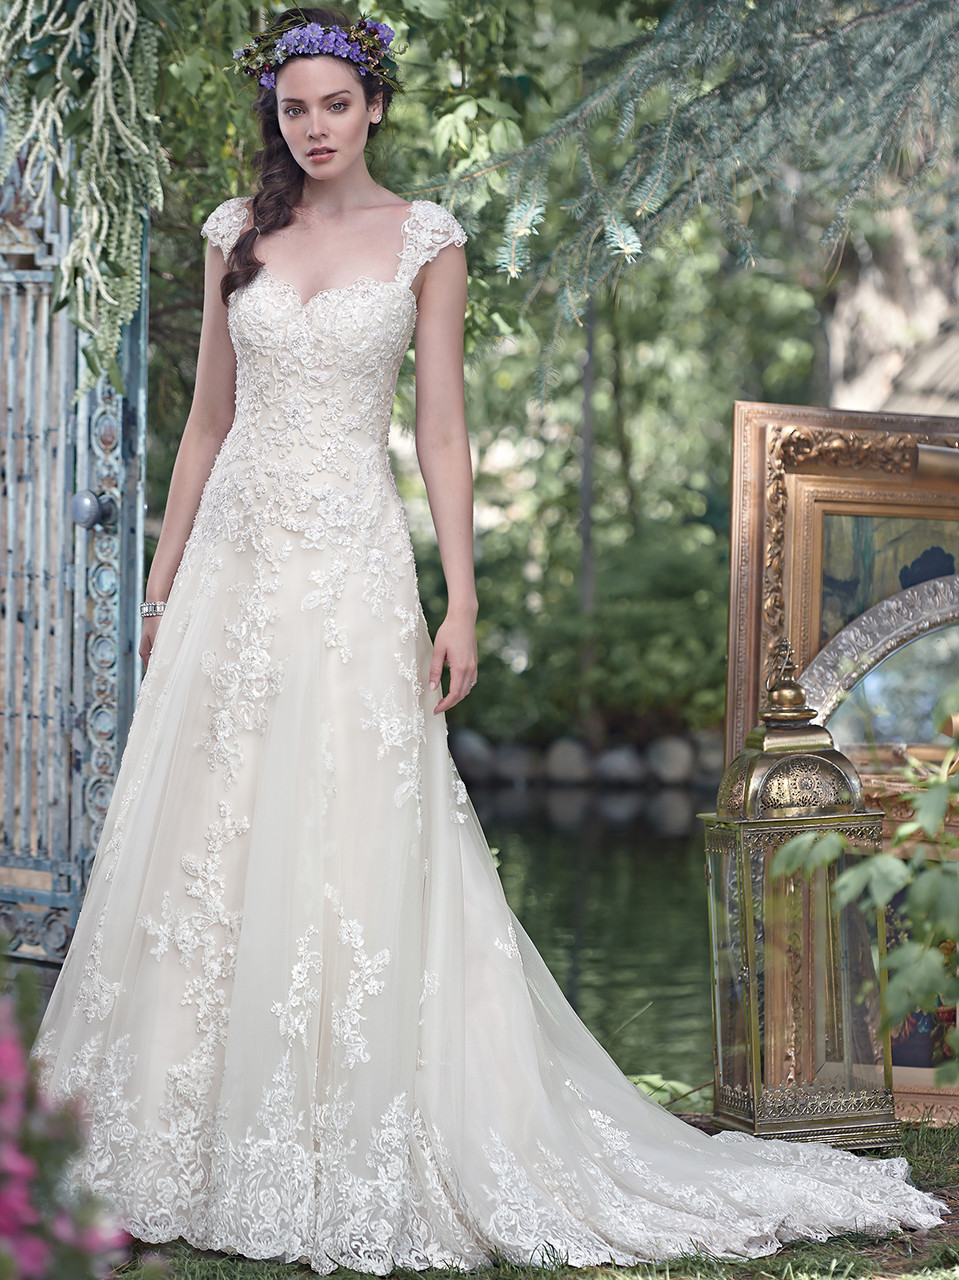 Maggie Sottero Laverna Sweetheart Bridal Gown - Dimitra Designs